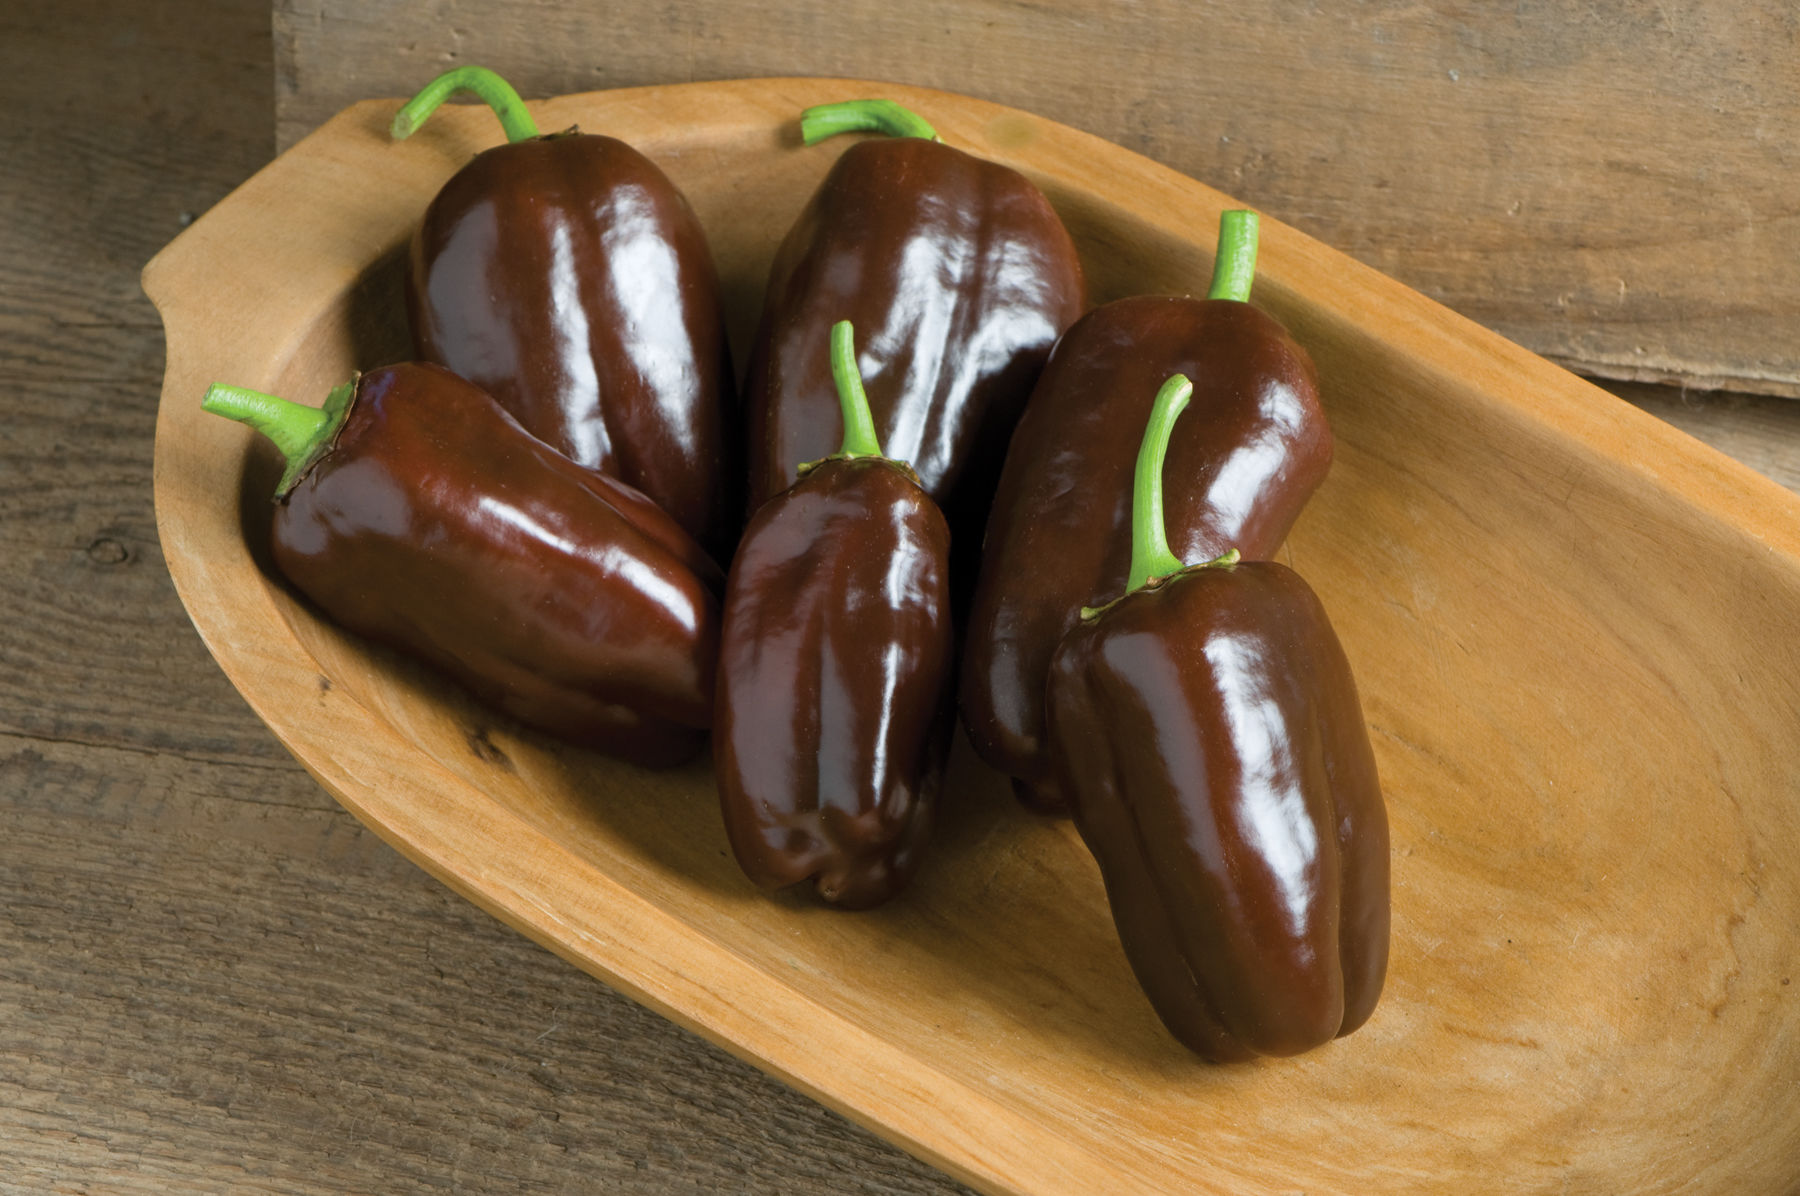 These are Sweet Chocolate Bell Peppers by Johnny's Selected Seeds. Johnny's is one of our favorite seed providers. Don't these look delicious?